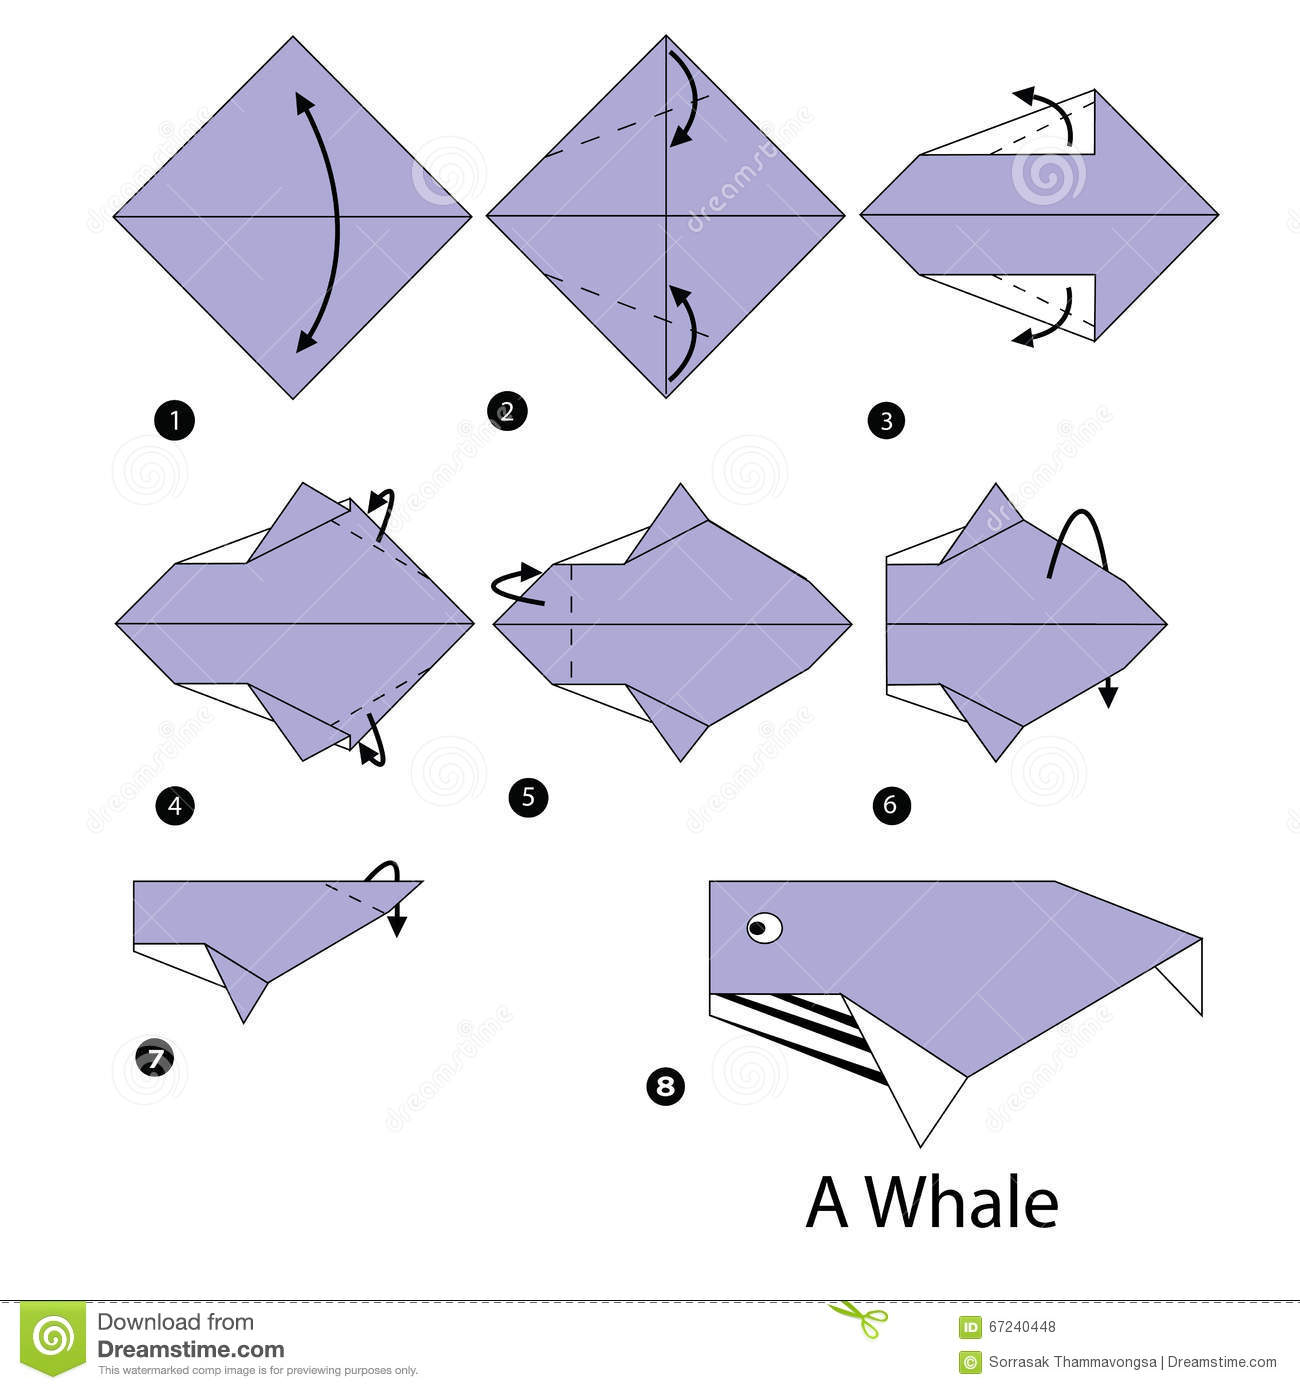 How To Make An Origami Whale Step By Instructions Auto Pigorigami Pig Instructionsorigami Diagram3d 3d Animals